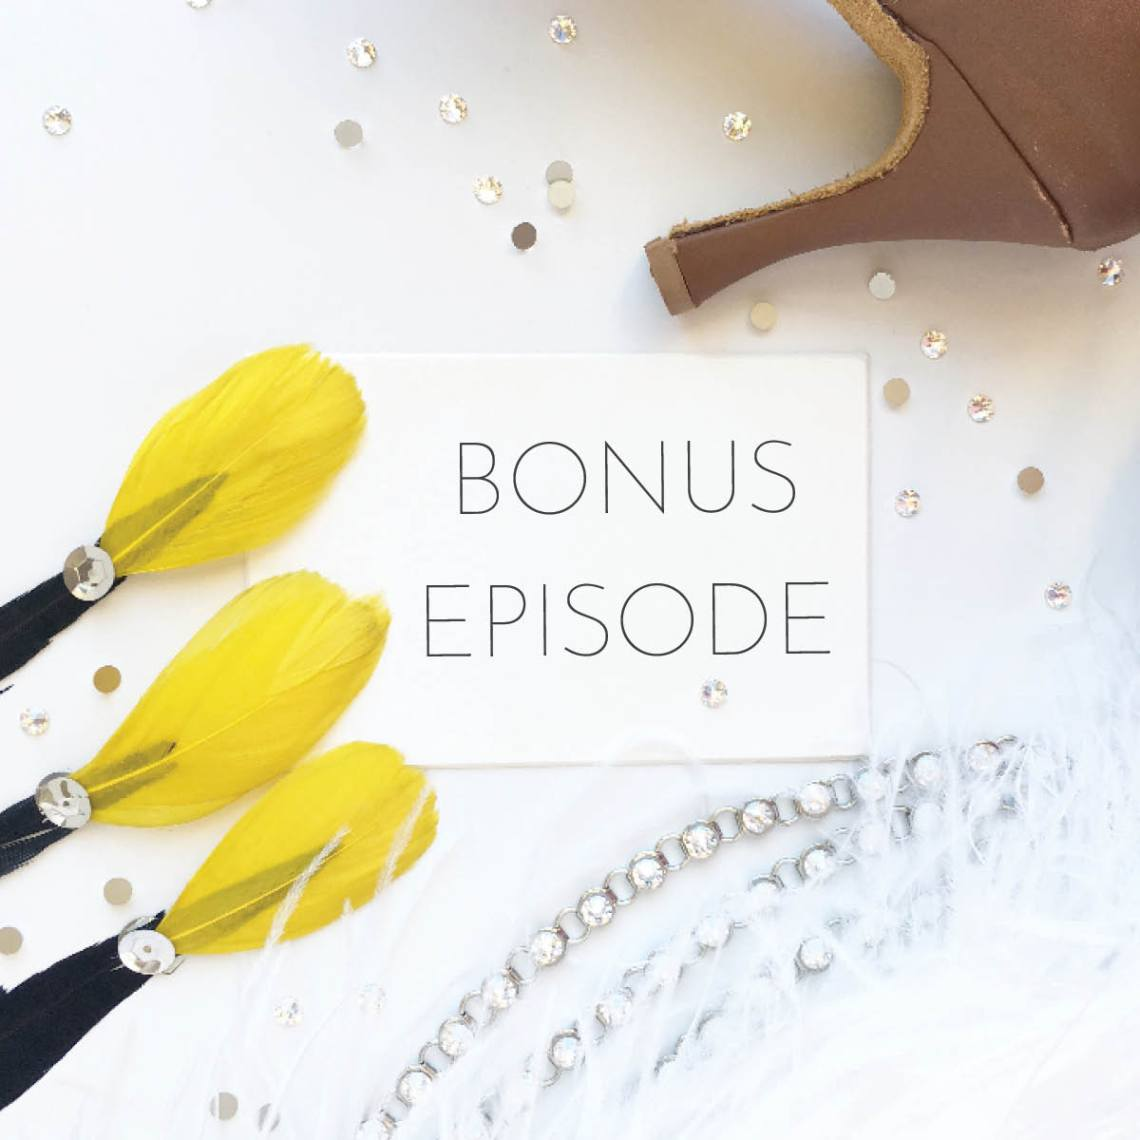 Showgirl's Life Podcast | Monthly bonus episode created exclusively for my Patrons on Patreon.com